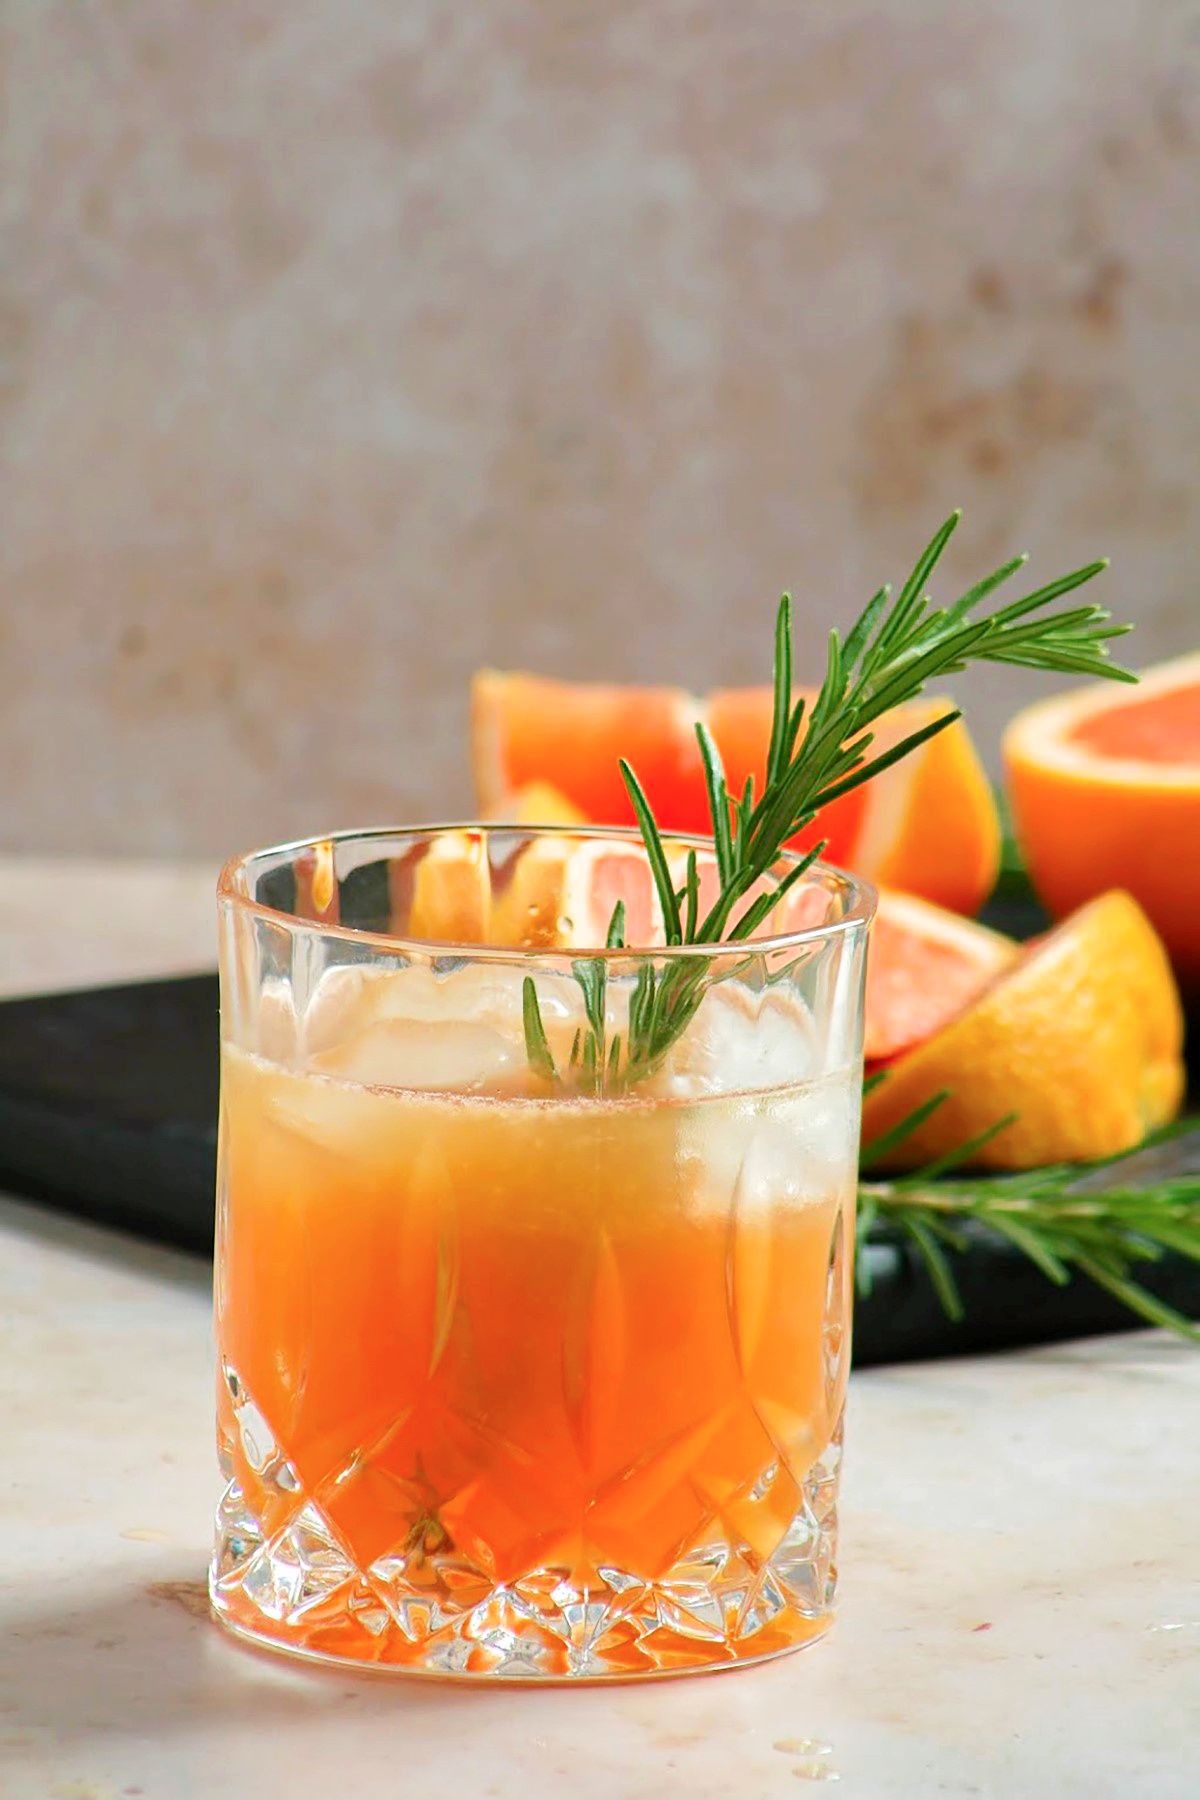 Grilled grapefruit greyhound cocktail in an old fashion glass over ice with a sprig of rosemary